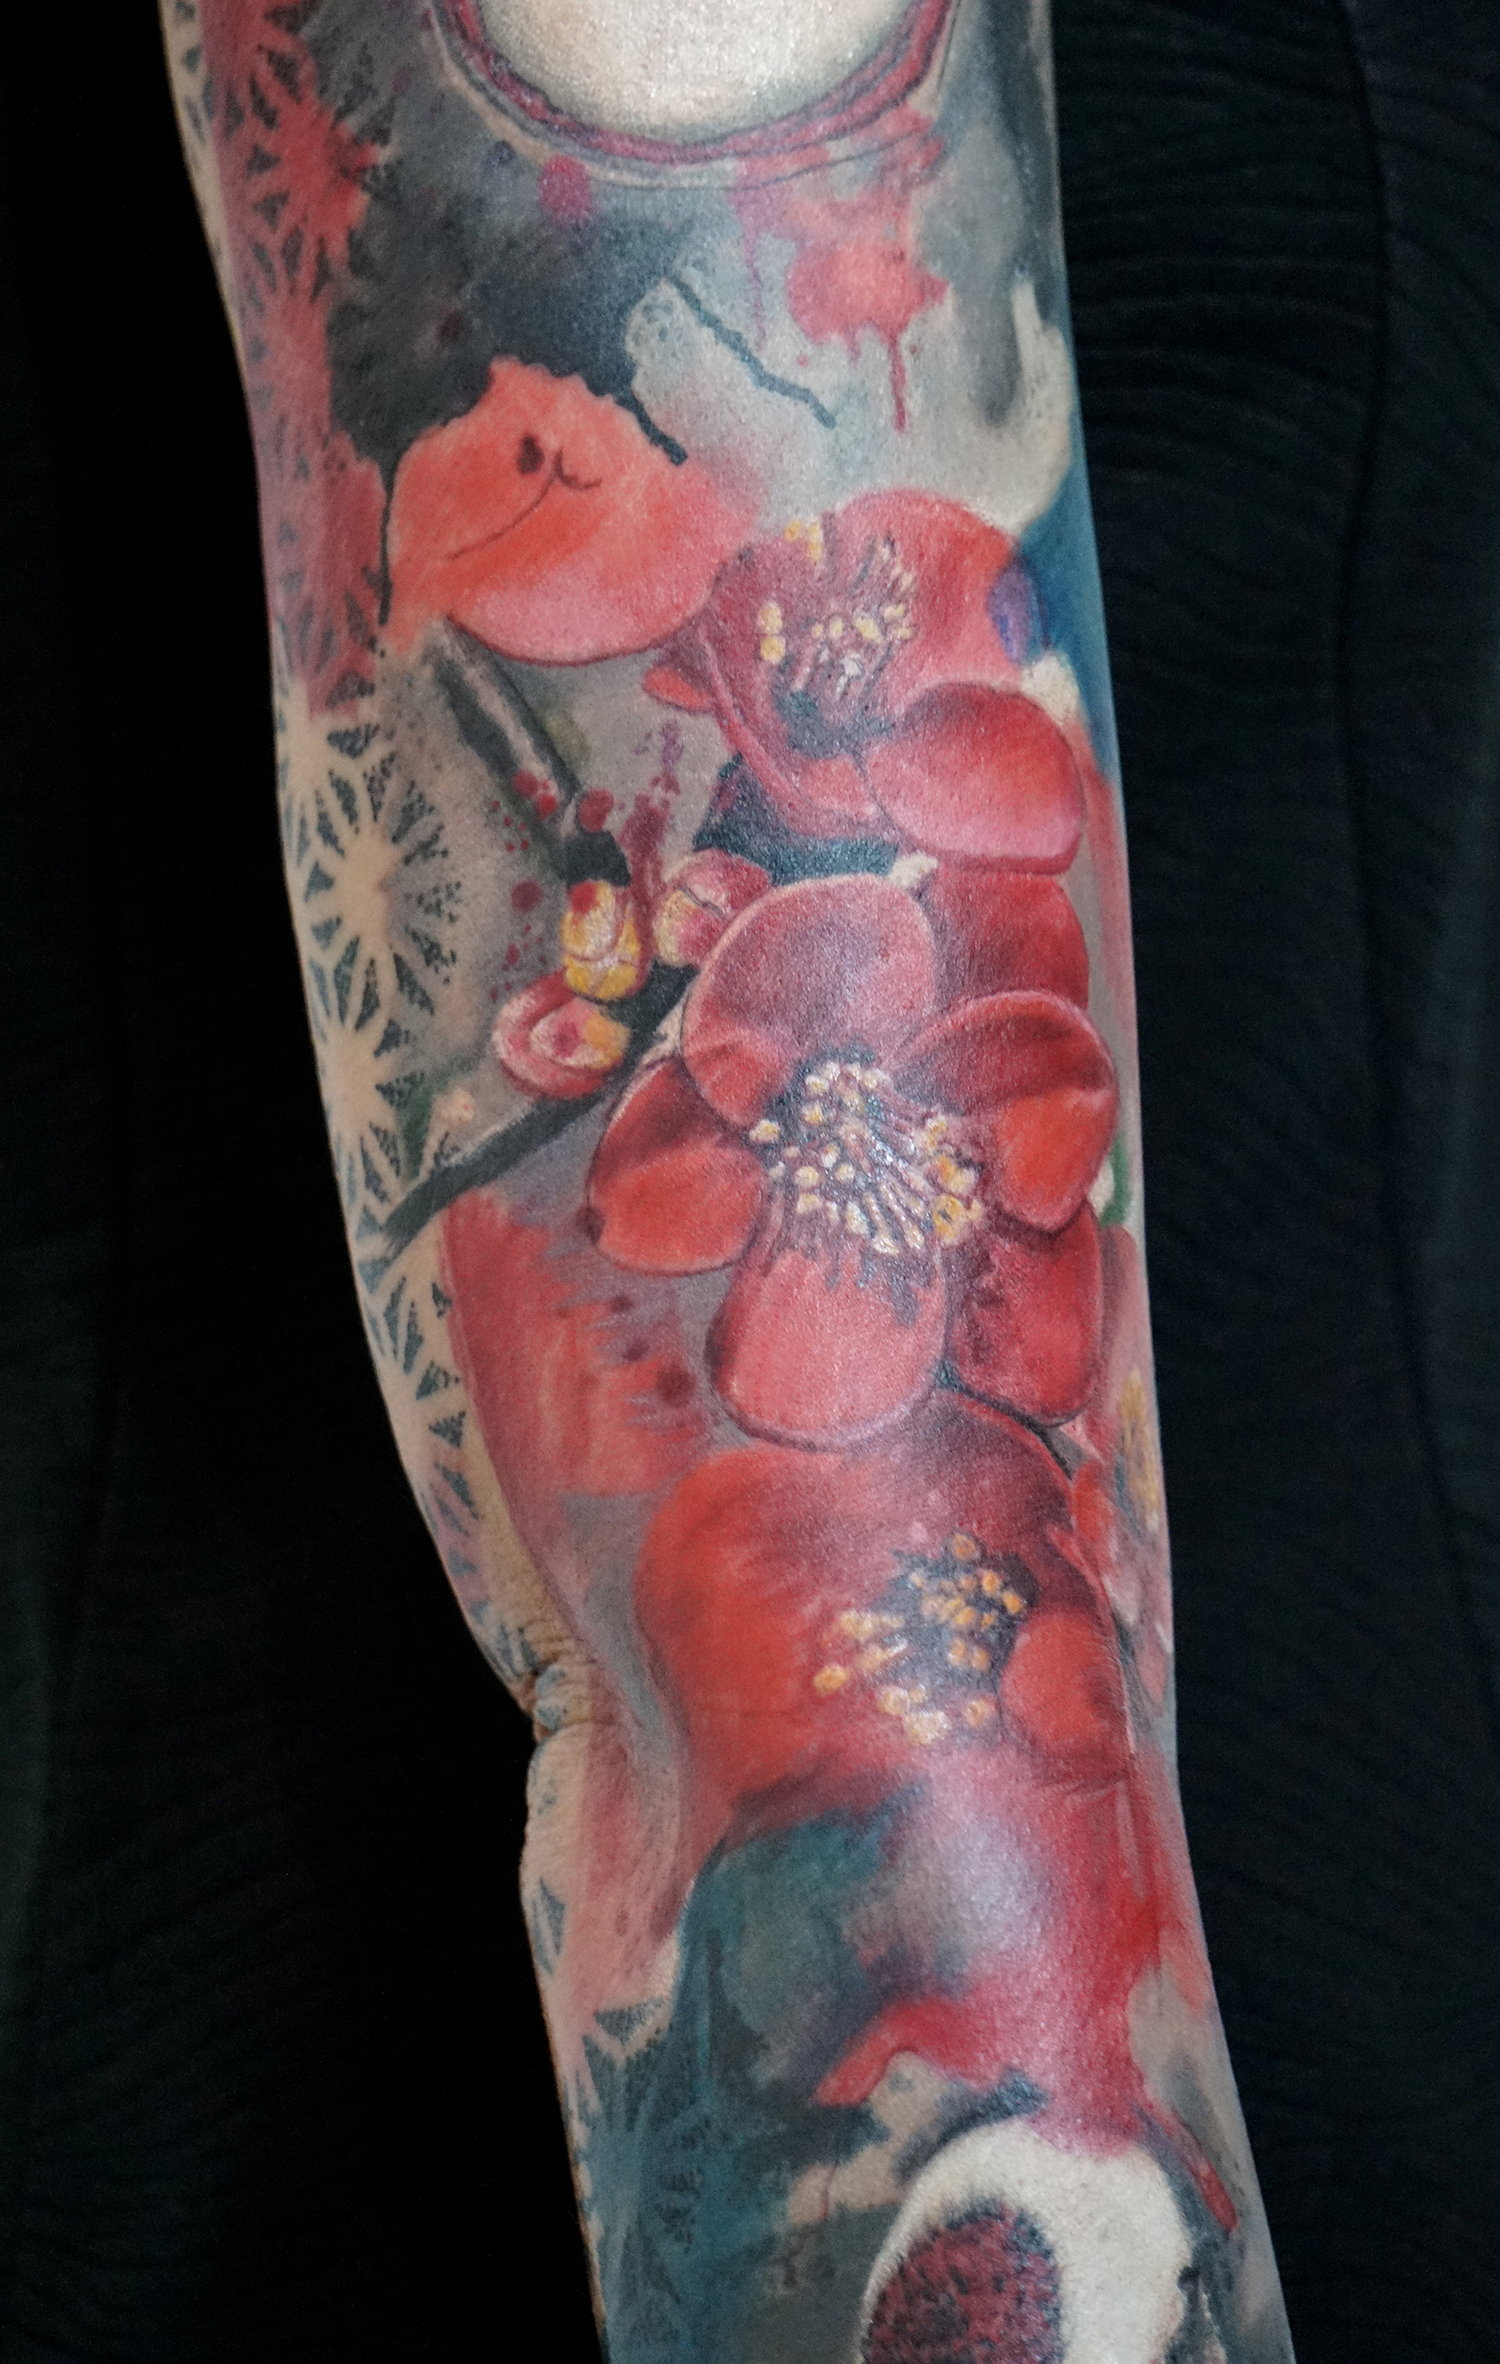 A glimpse at the elaborate Asian-style tattoo by Andy Kemp.